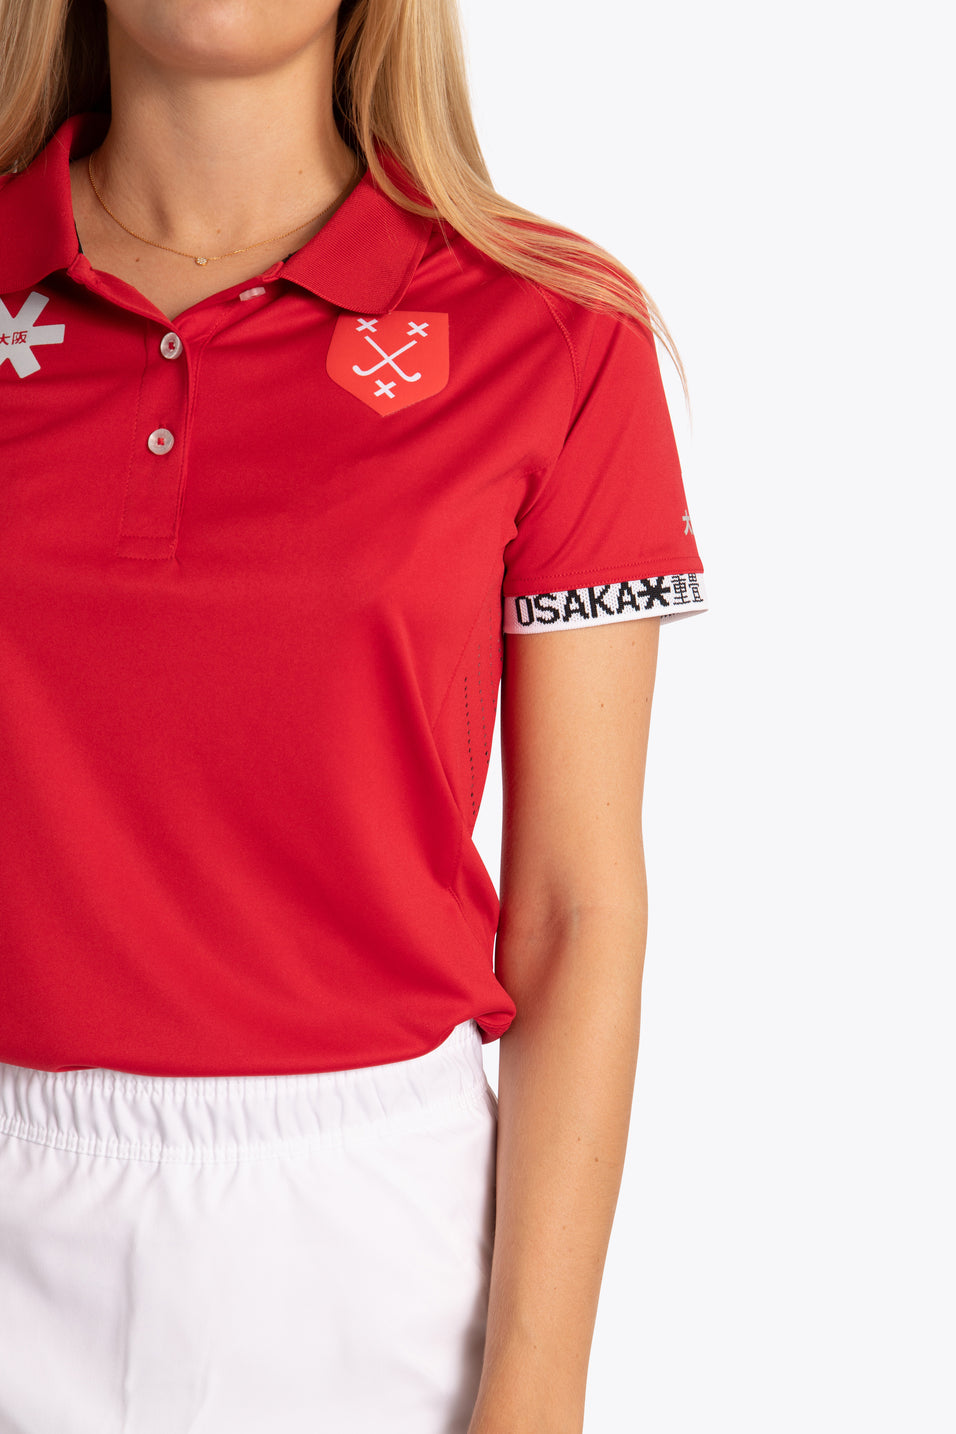 BH&BC Breda Women Polo Jersey - Red